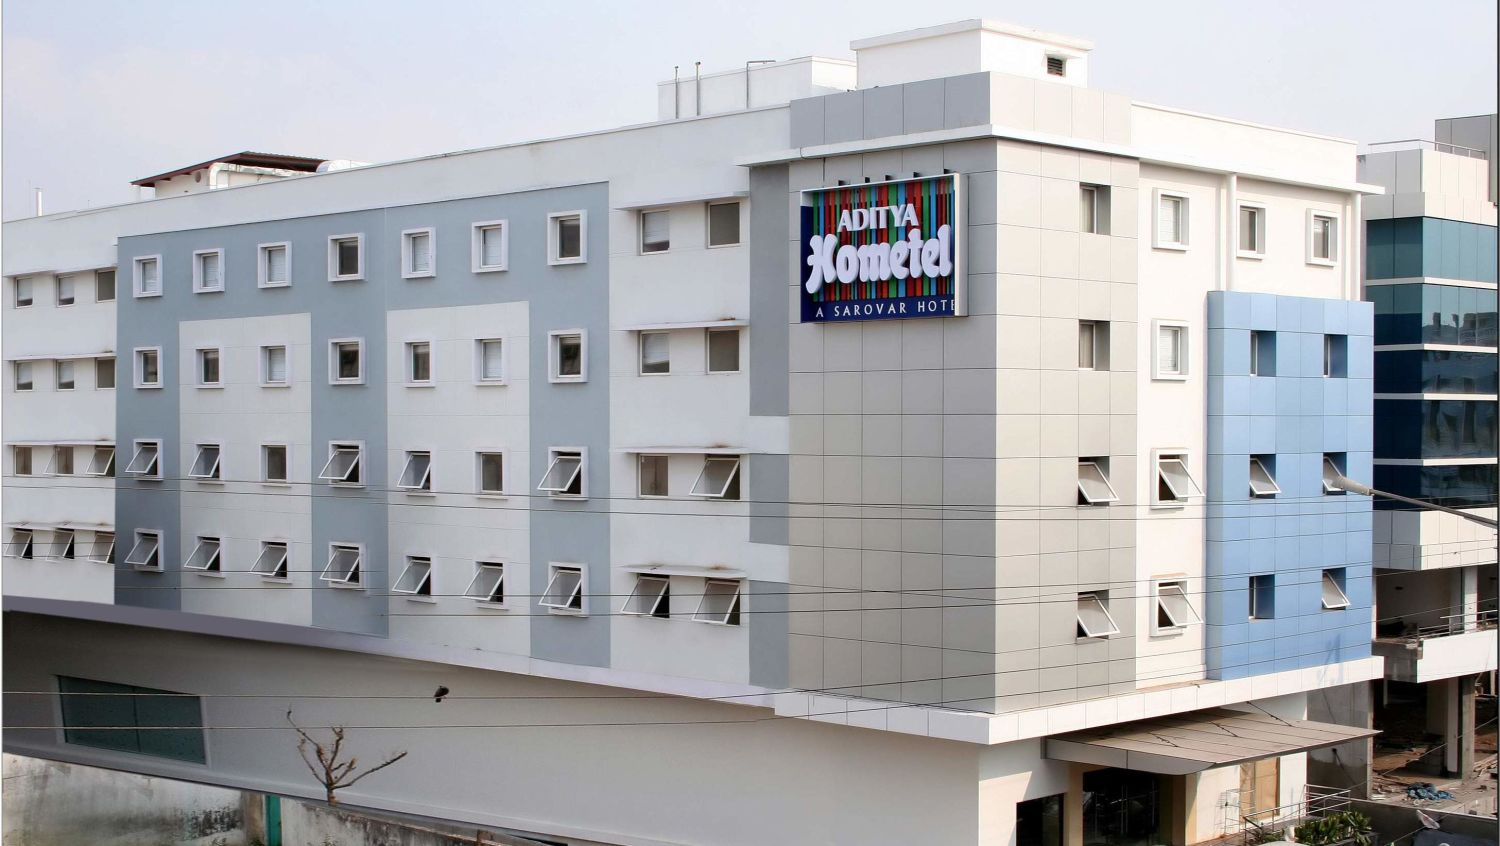 Facade at Aditya Hometel Hyderabad, resorts in hyderabad 2